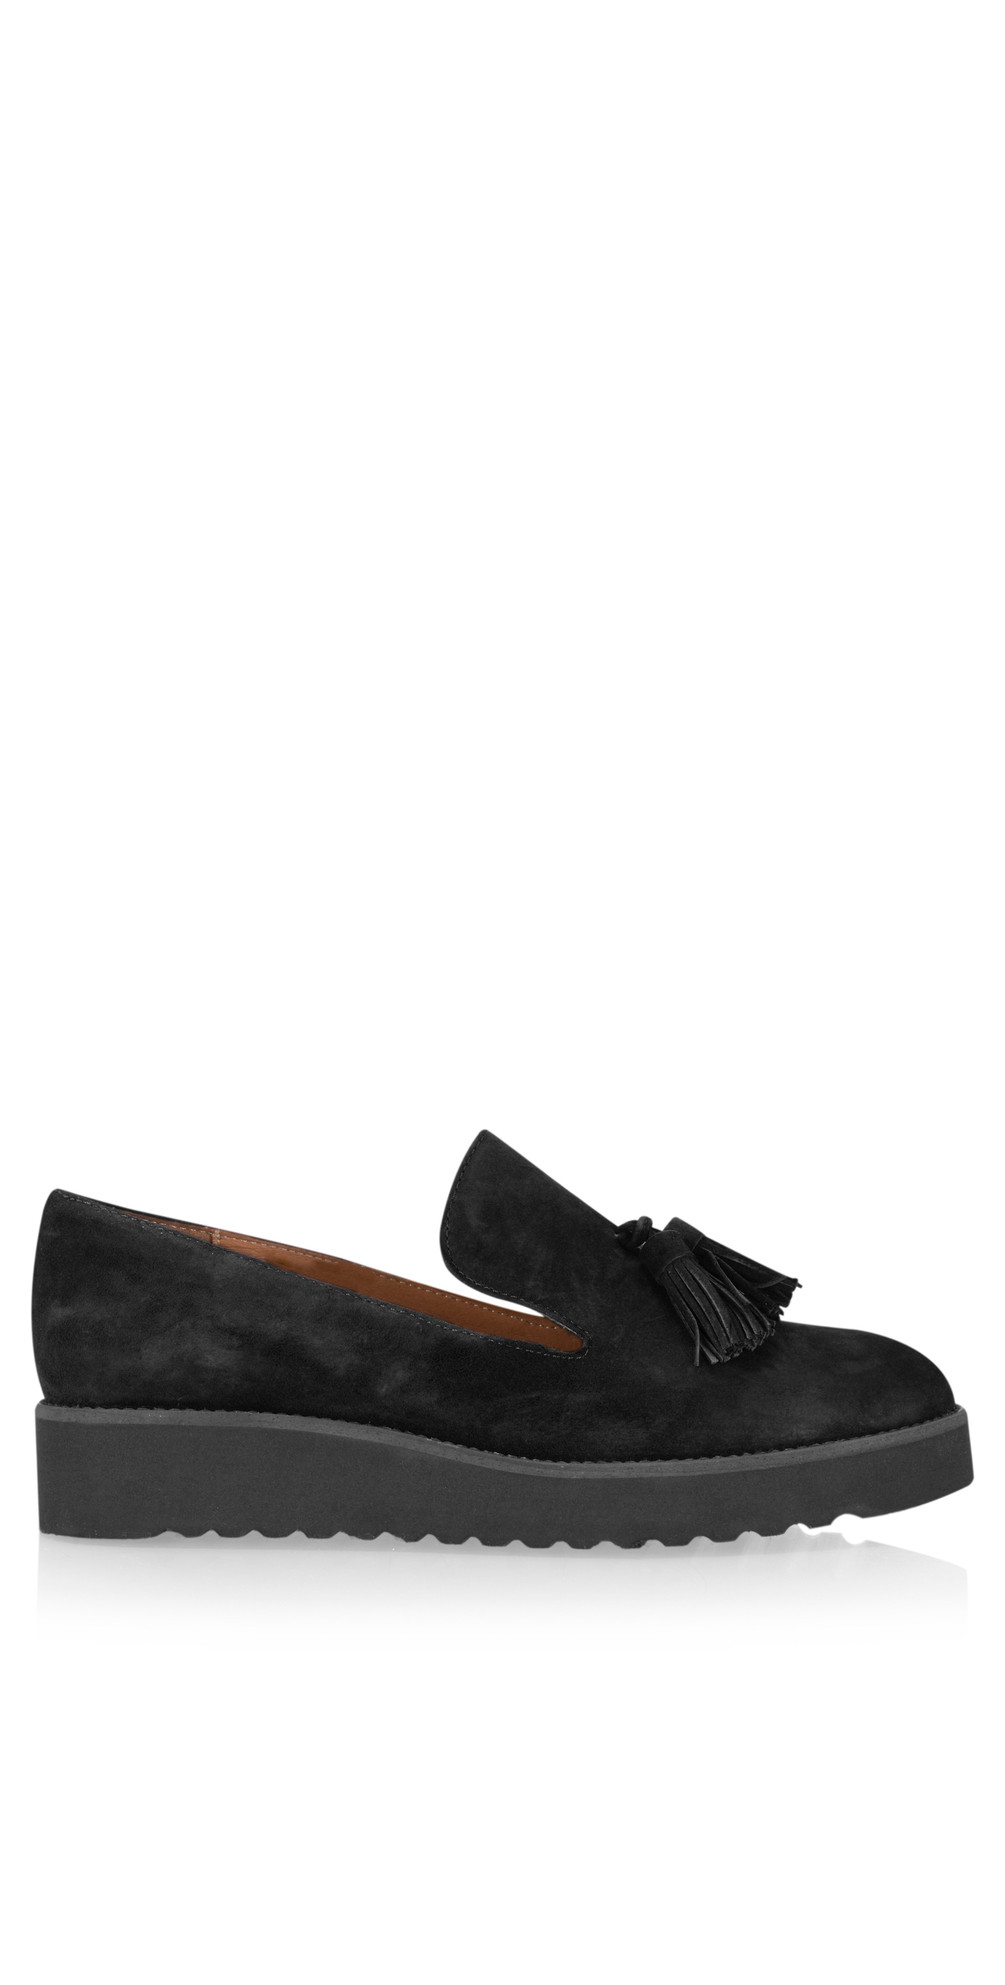 00d36c45c47 Gemini By Carmen Saiz Monica Tassel Modern Loafer in Black